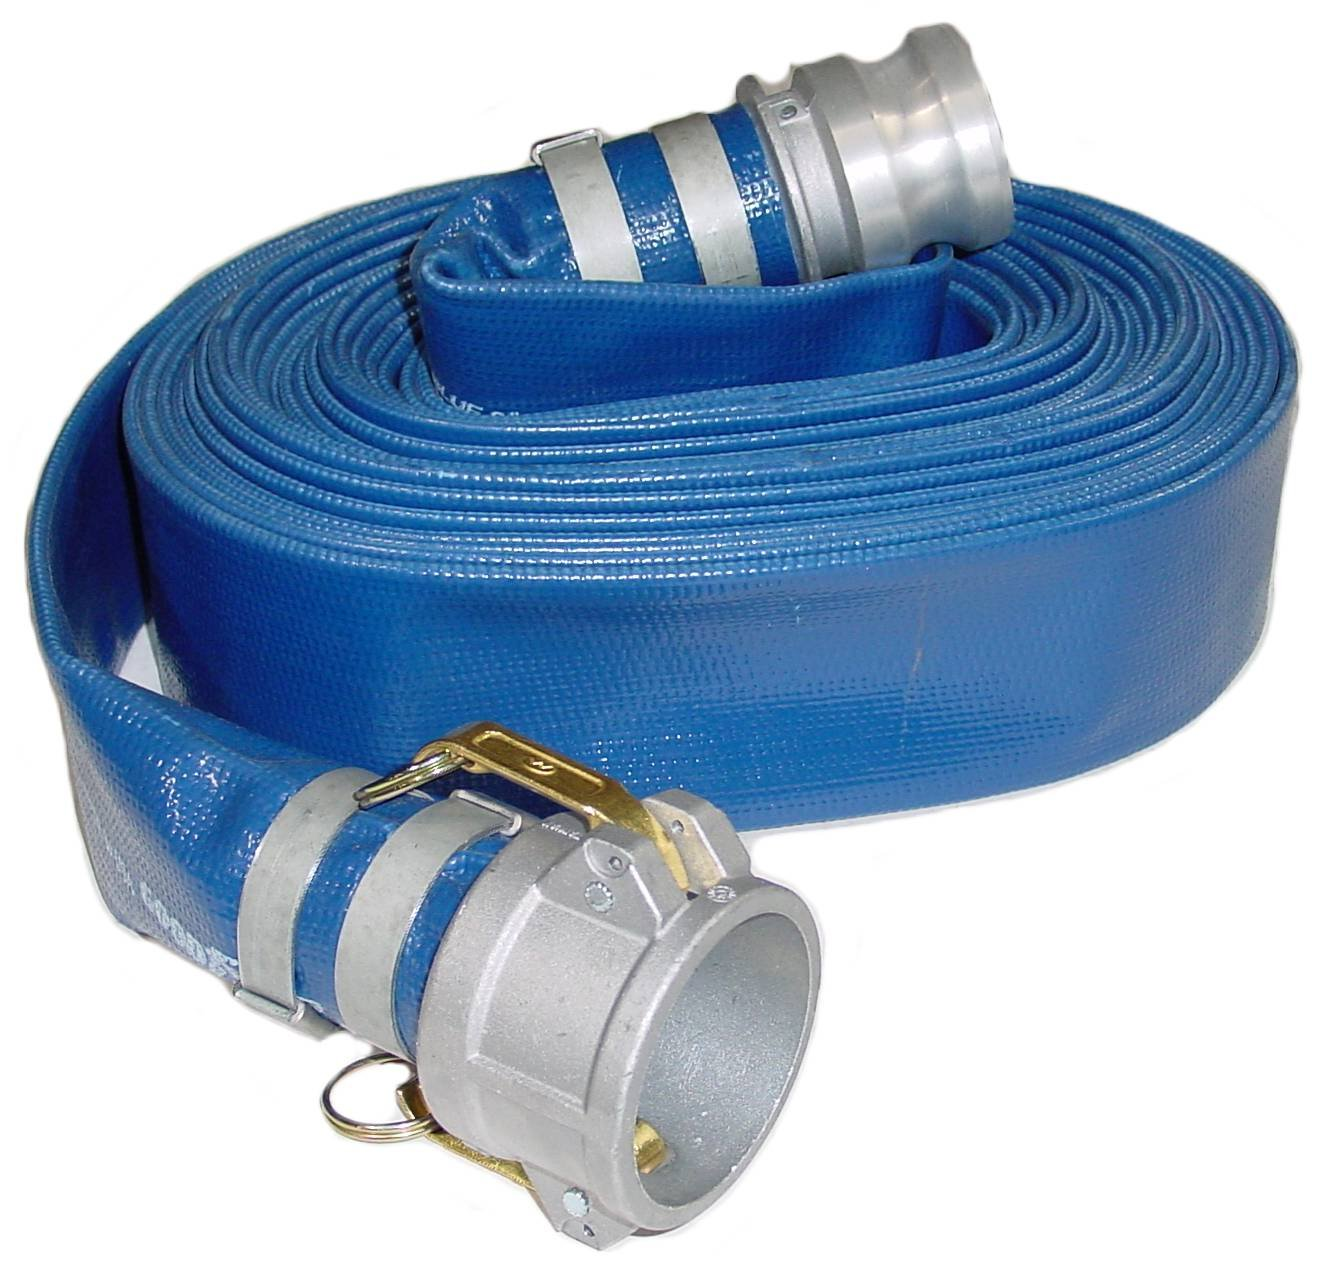 Blue 2 Male X Female Cam And Groove 65 psi Max Pressure 25 Length Abbott Rubber PVC Discharge Hose Assembly 2 ID